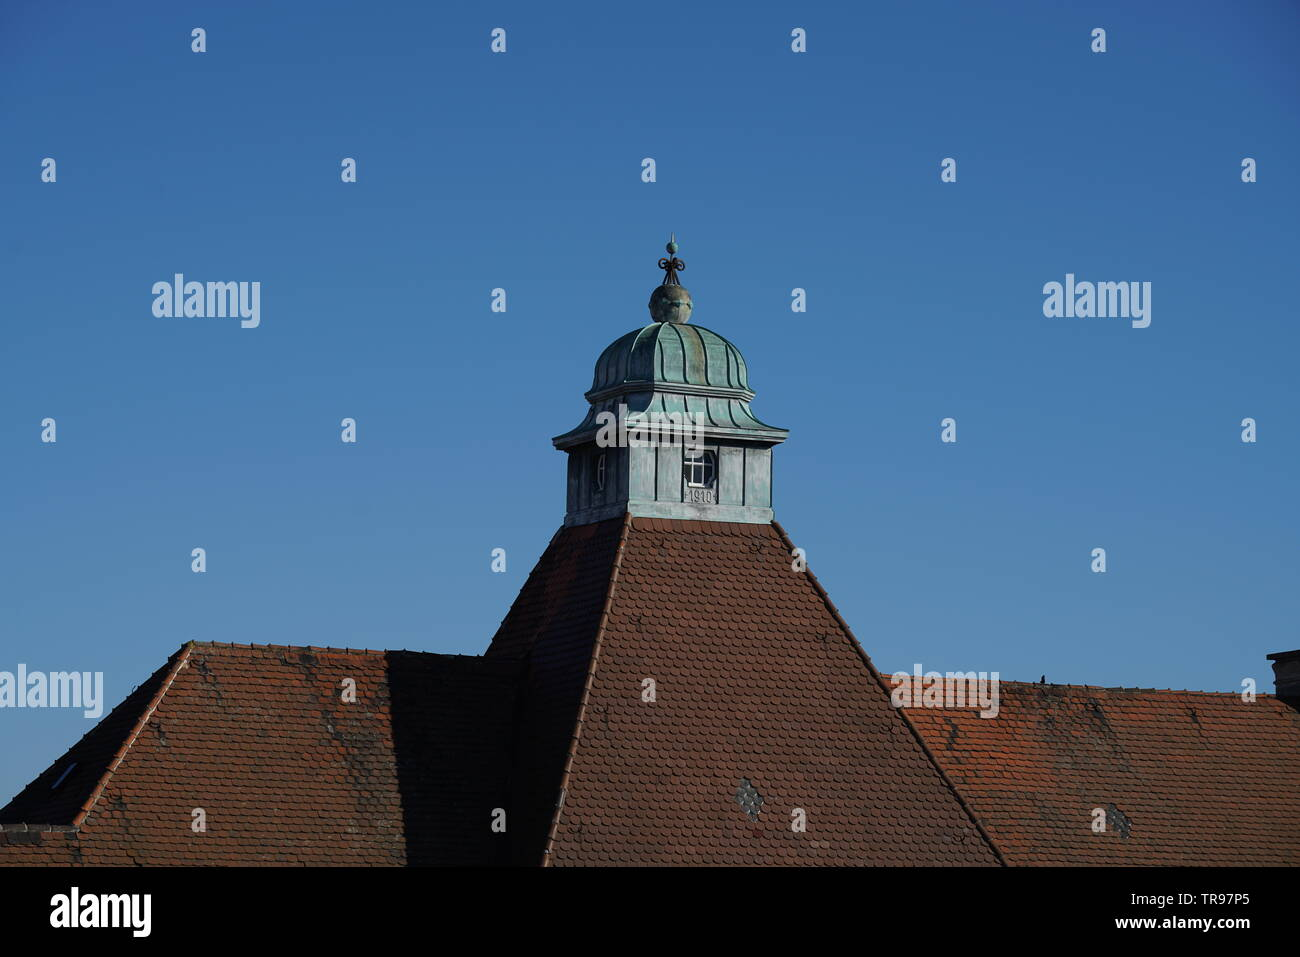 Beaver Tails As Roofing Are Very Popular In Bavaria Especially On Steep Roofs Photographed On A Spring Afternoon Stock Photo Alamy